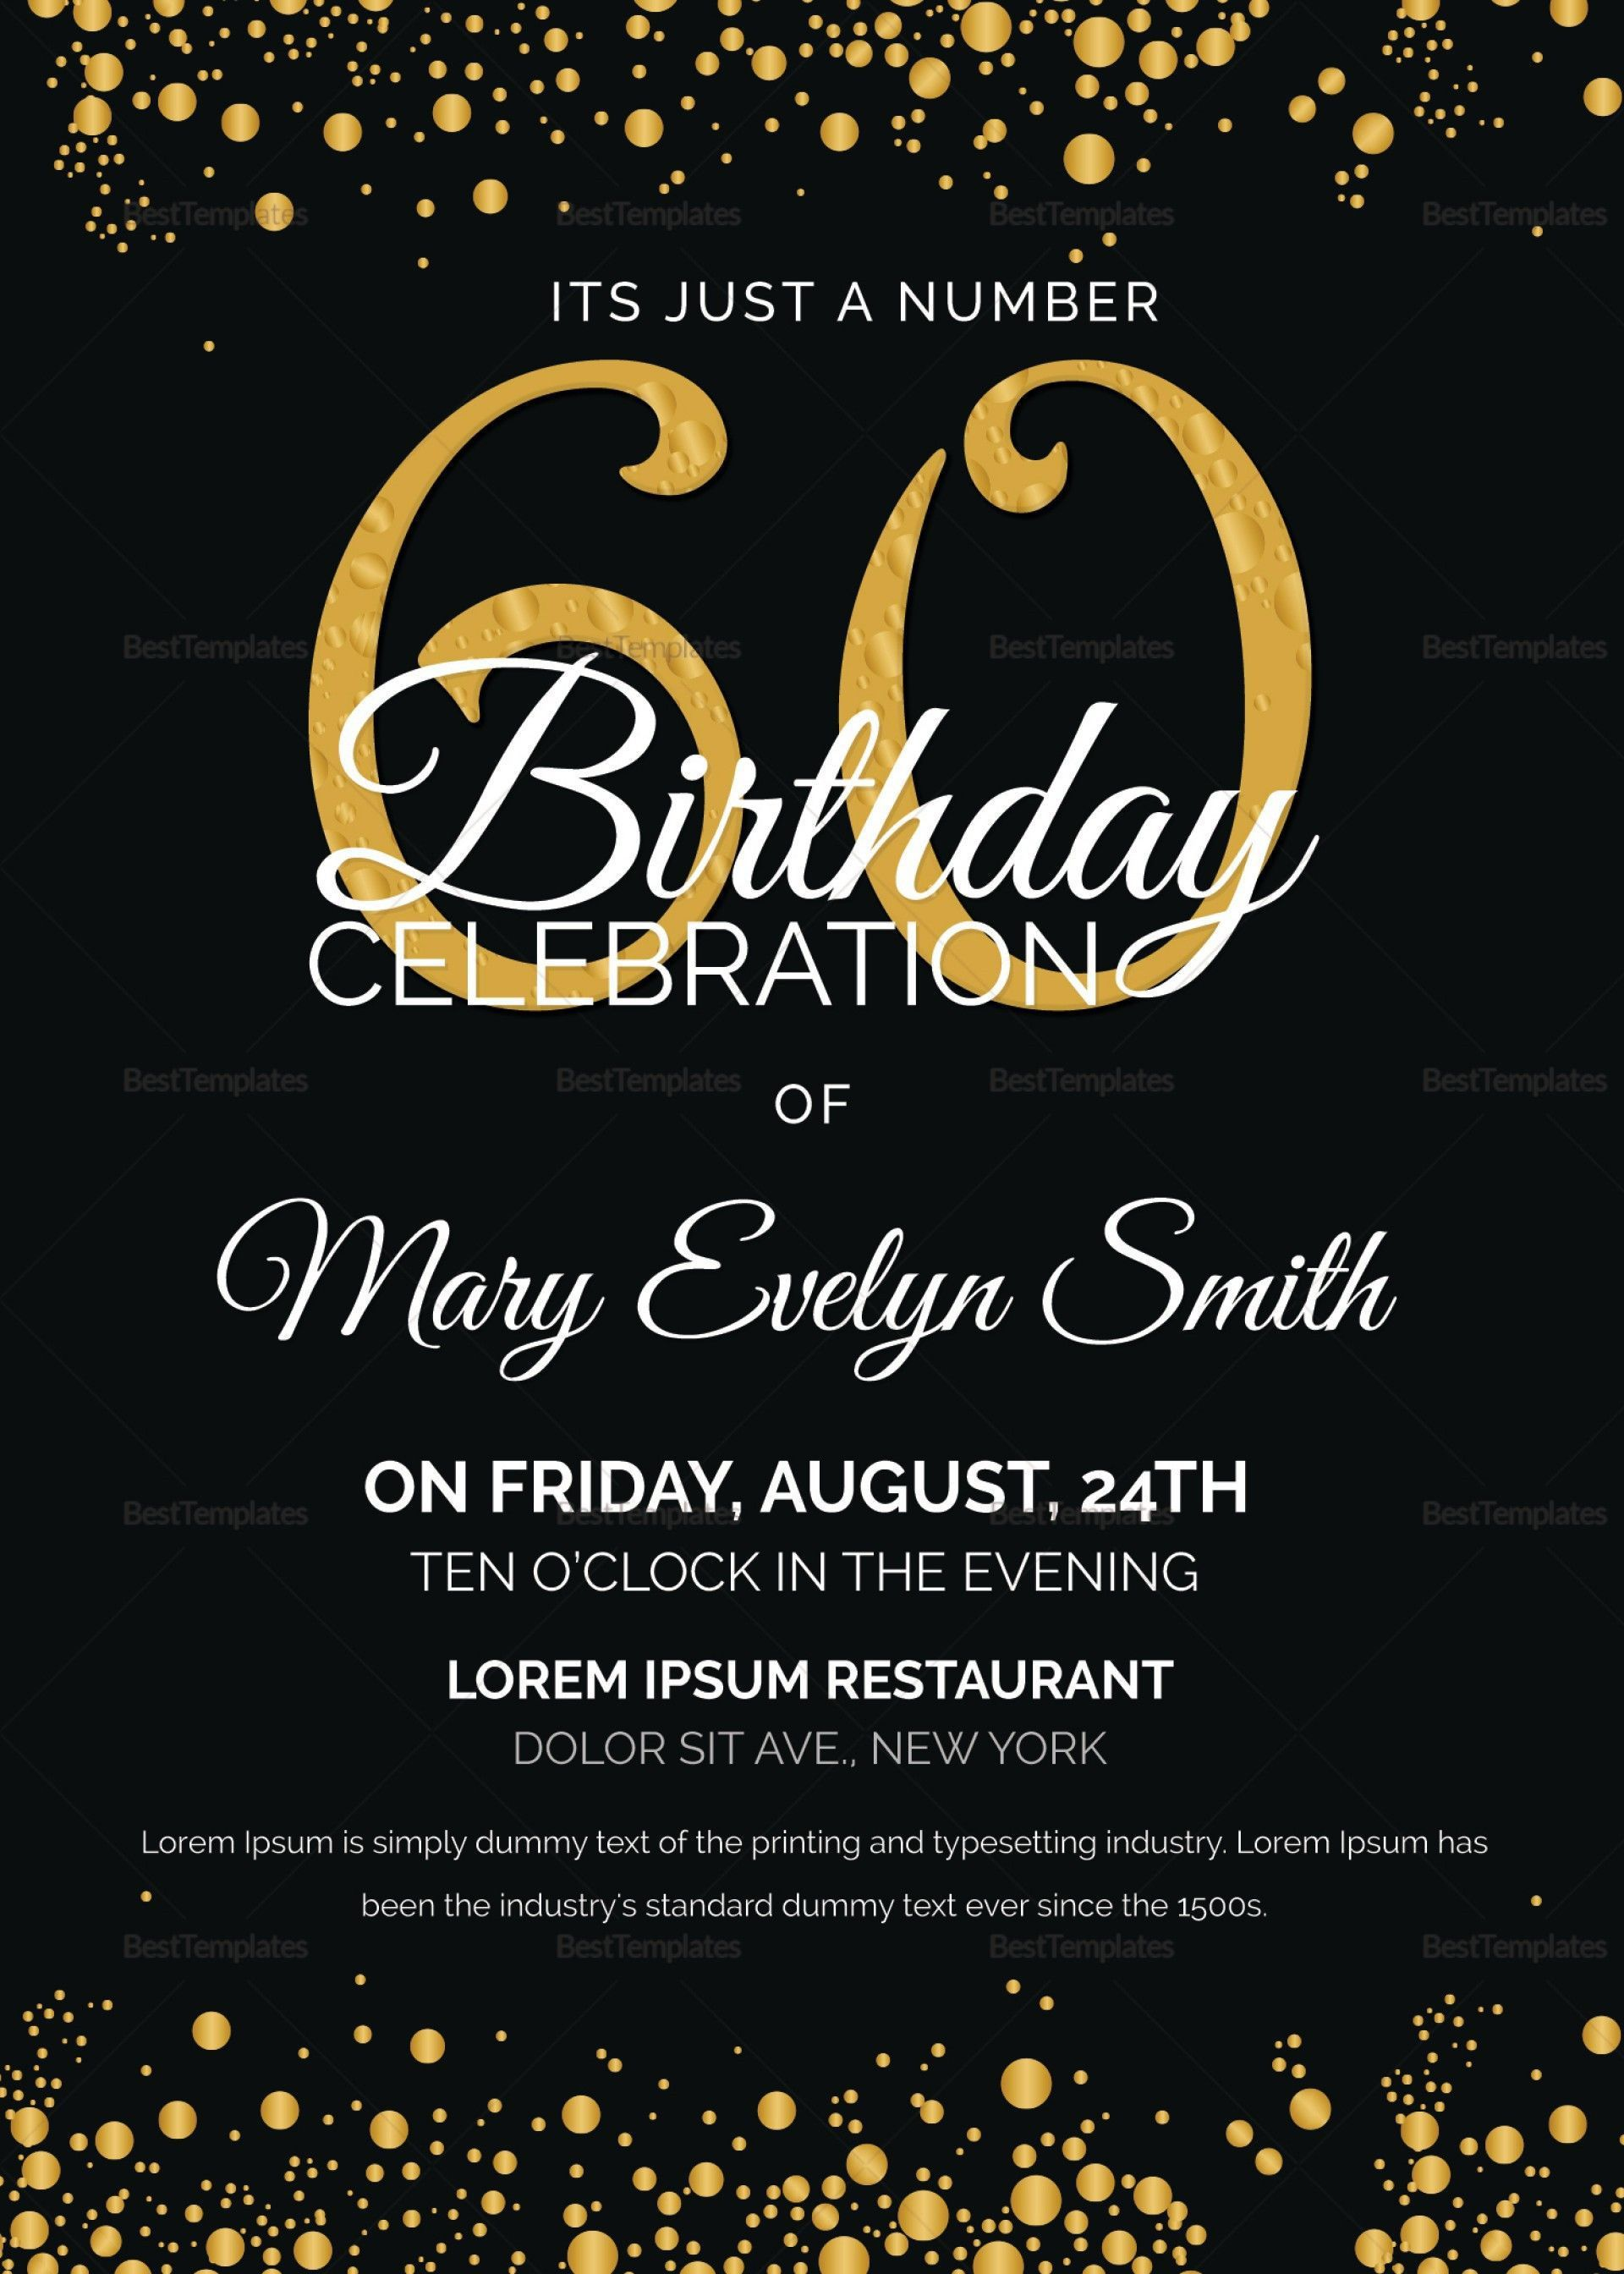 006 Awesome 60 Birthday Invite Template Highest Clarity  Templates 60th Printable FreeFull